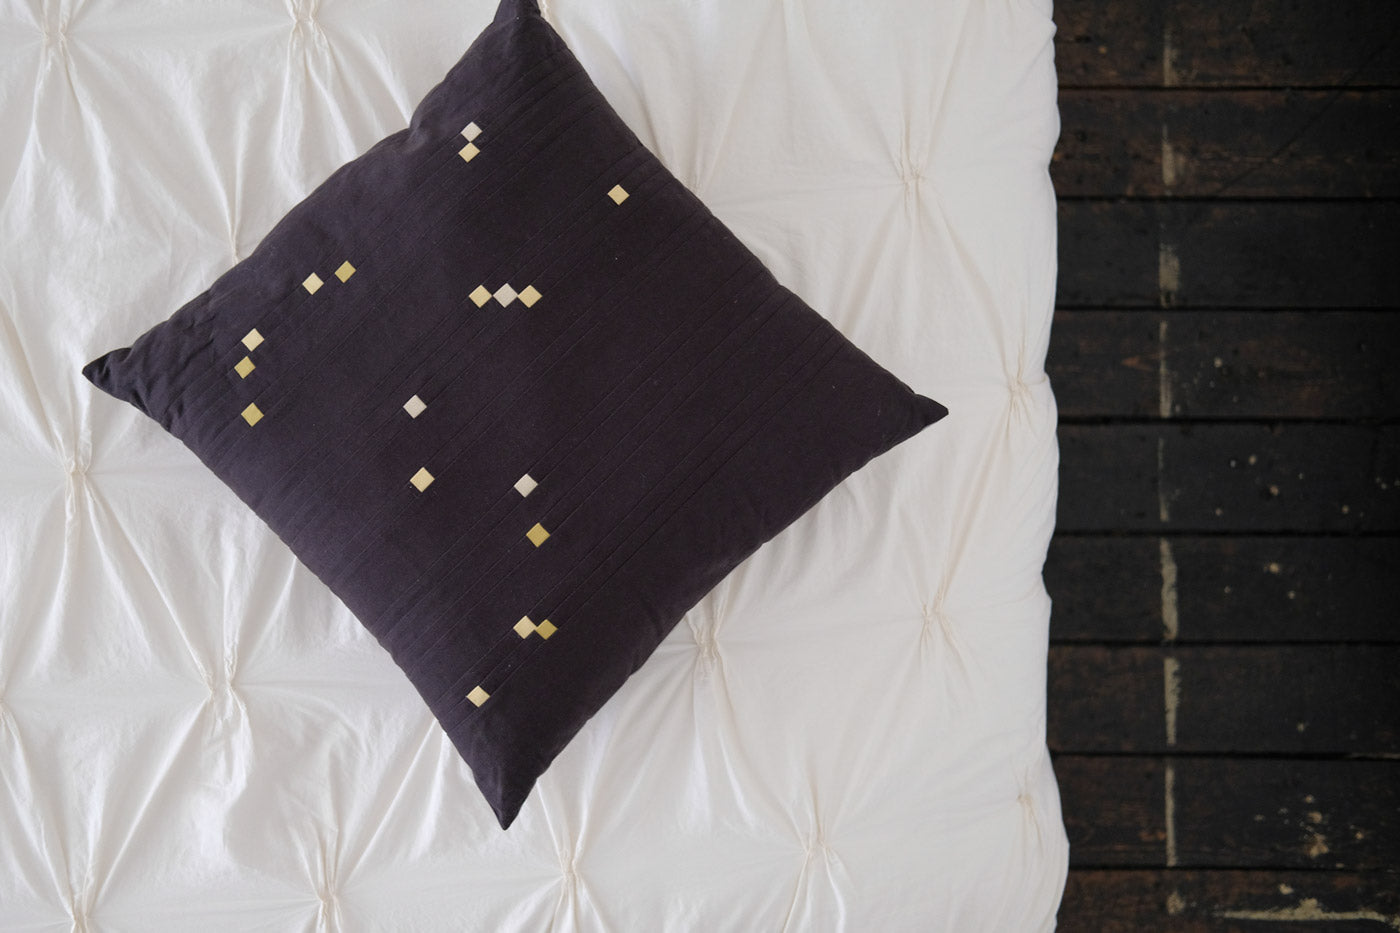 Orion Pillow on a white bed looking from above